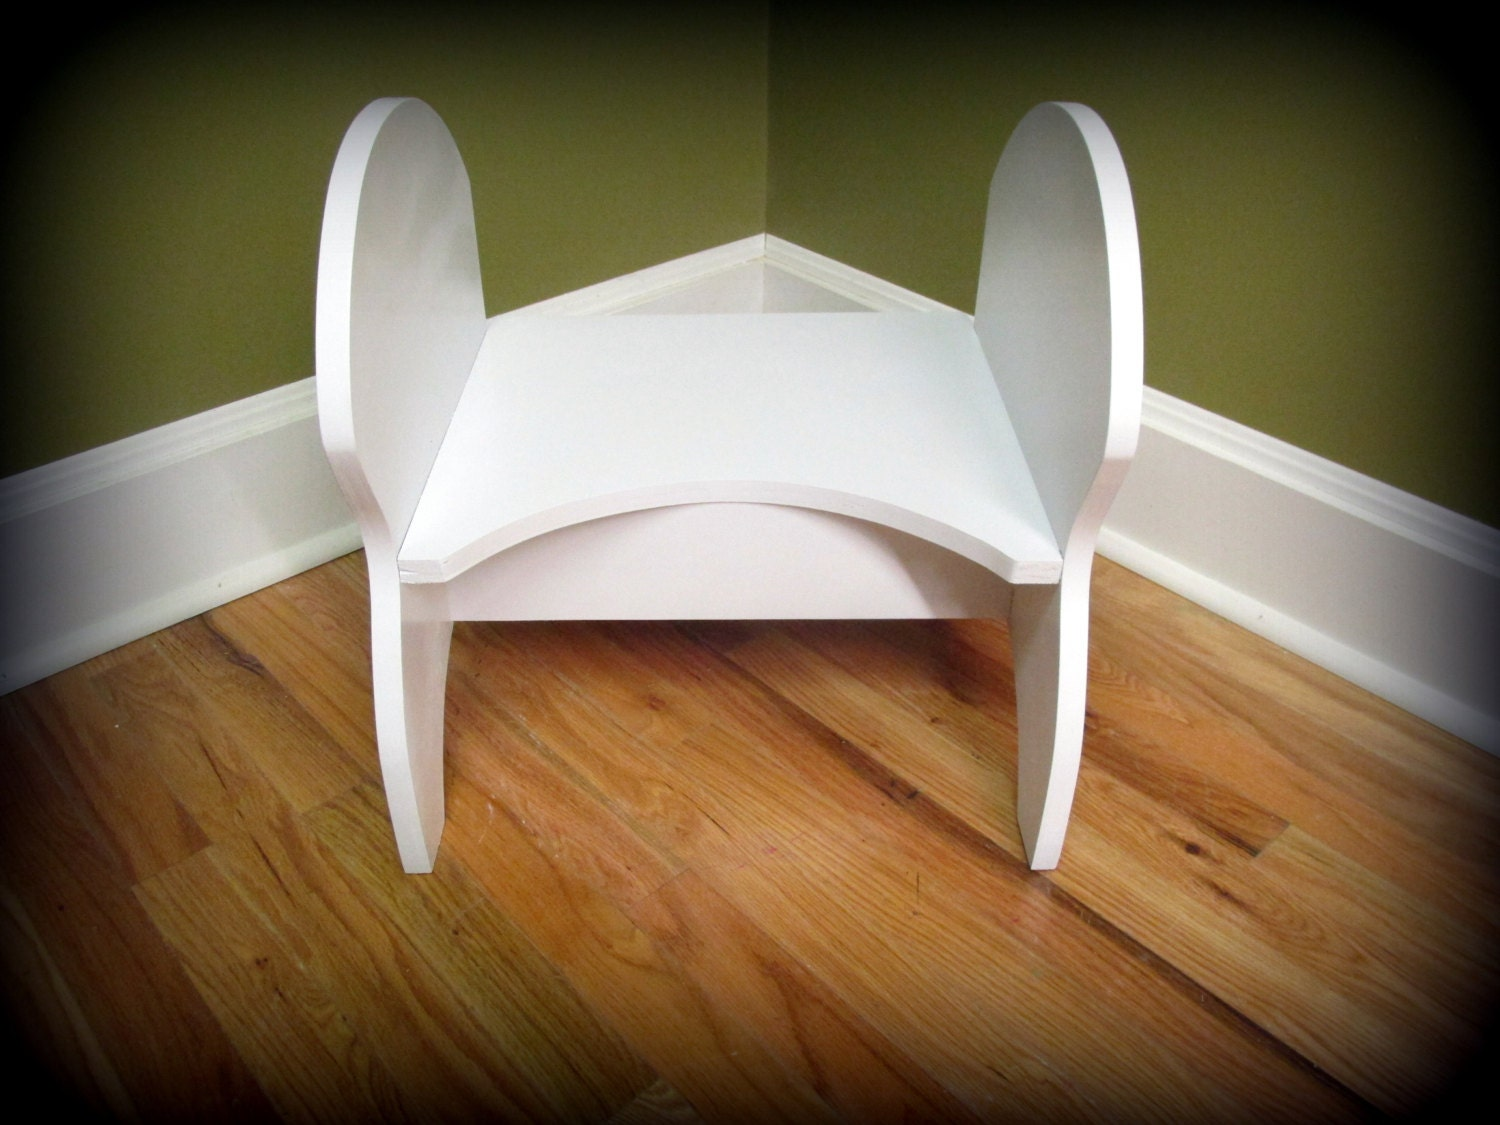 Amazing photo of potty step stool whiteblack handles by Clemswshop on Etsy with #6D4620 color and 1500x1125 pixels